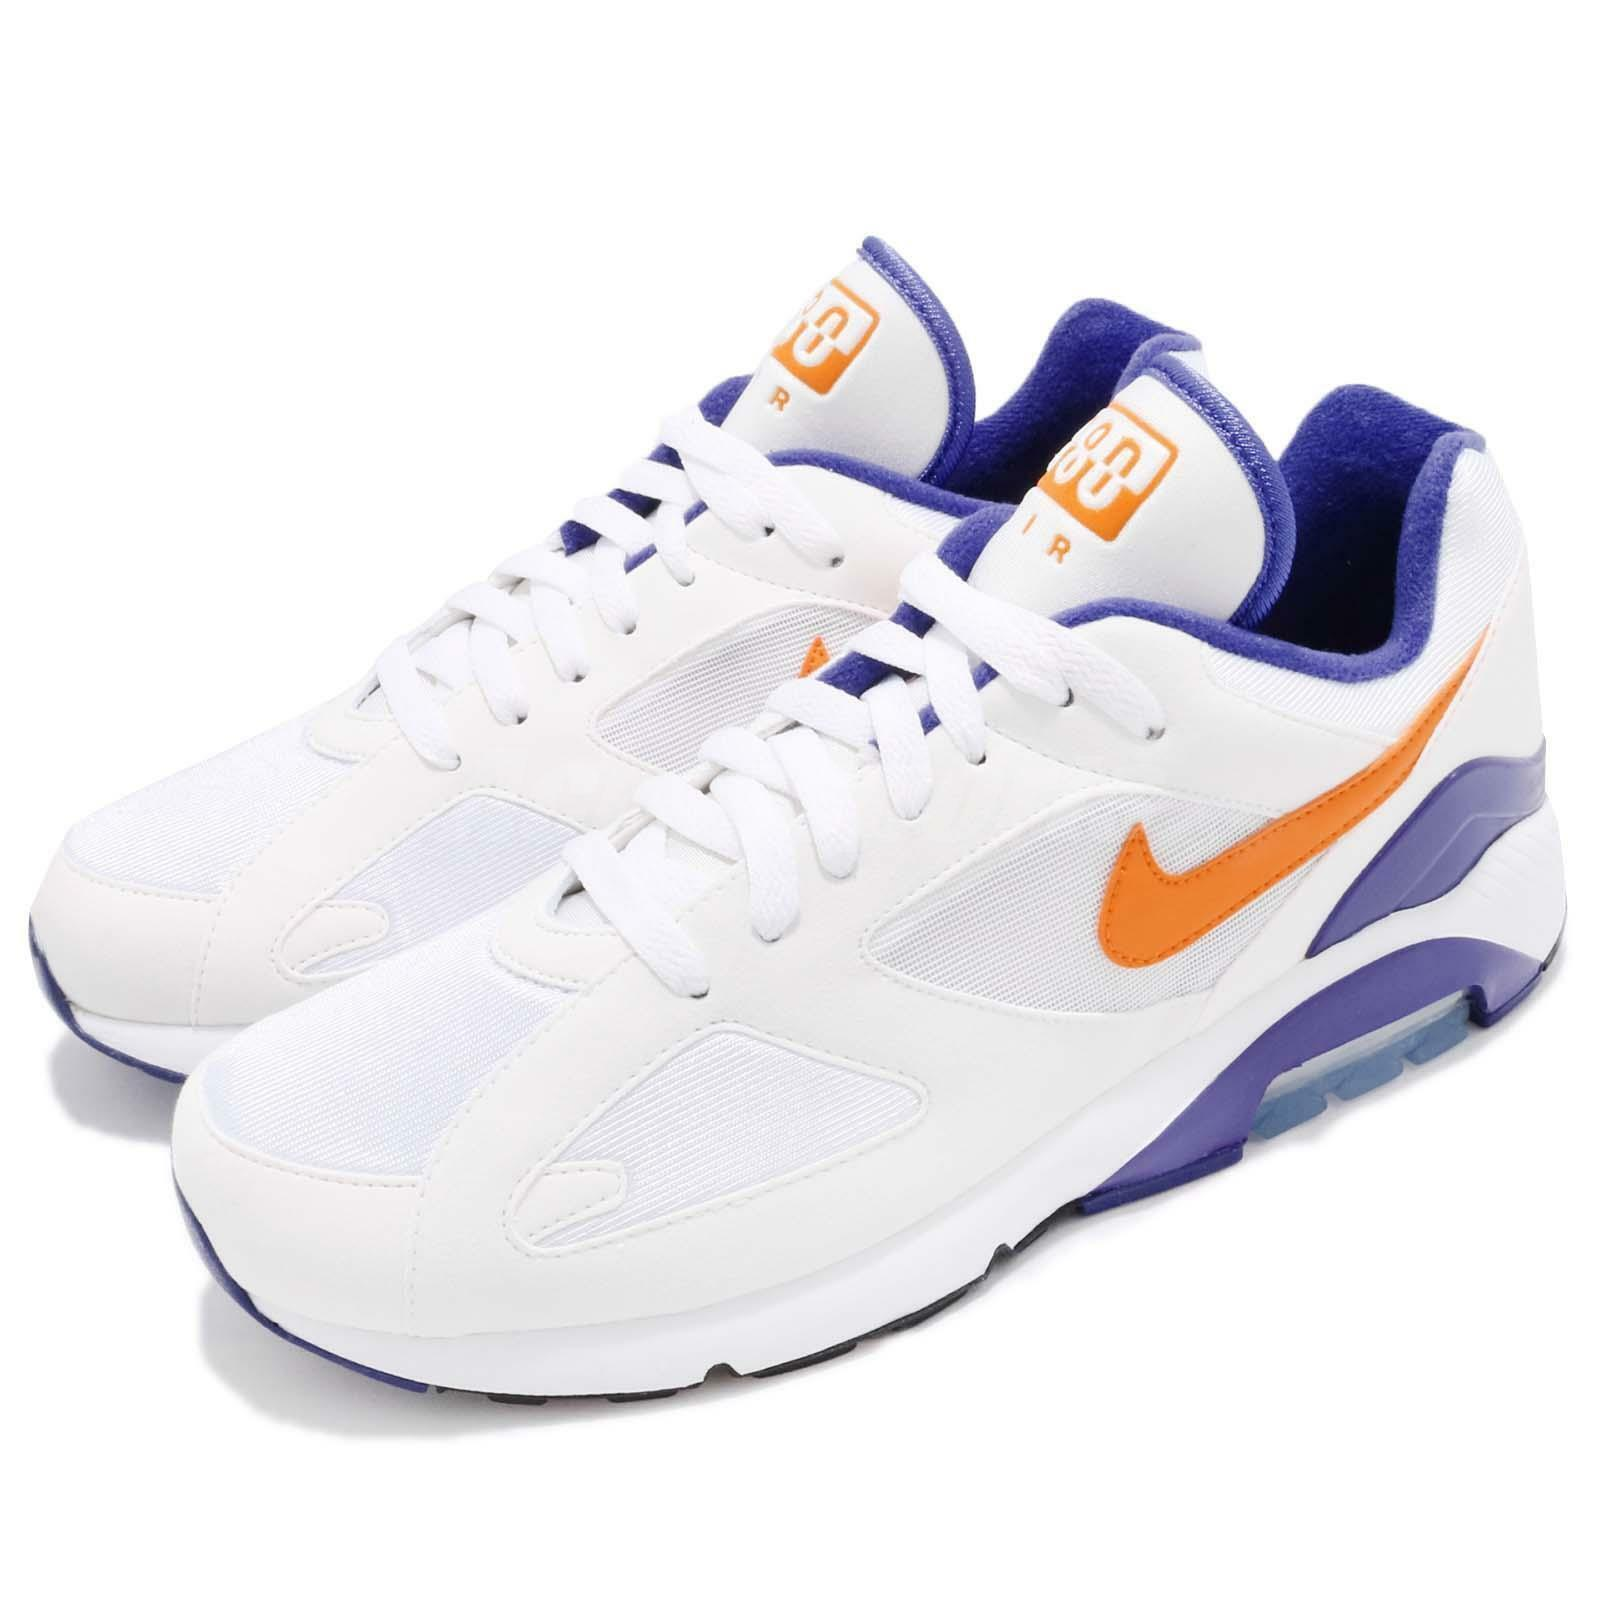 6108549313 Nike Men Air Max 180 OG Bright Ceramic White Purple Men Running shoes  615287-101